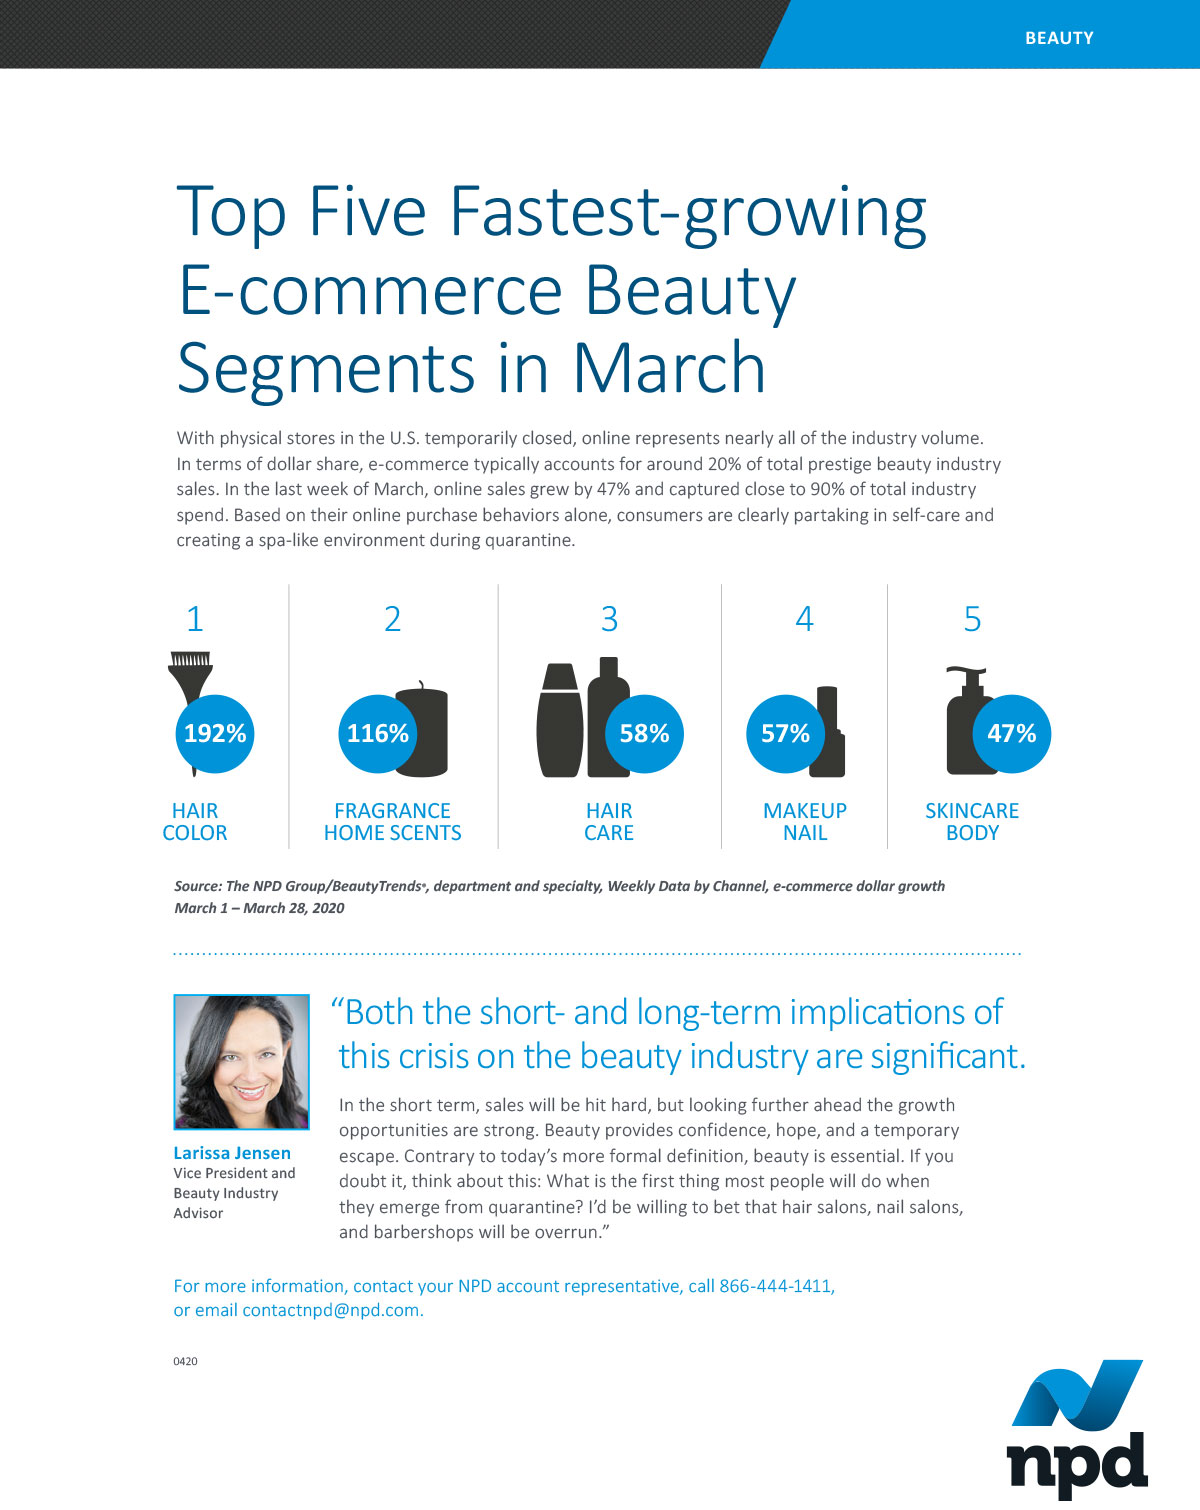 With physical stores in the U.S. temporarily closed, online represents nearly all of the prestige beauty industry volume.